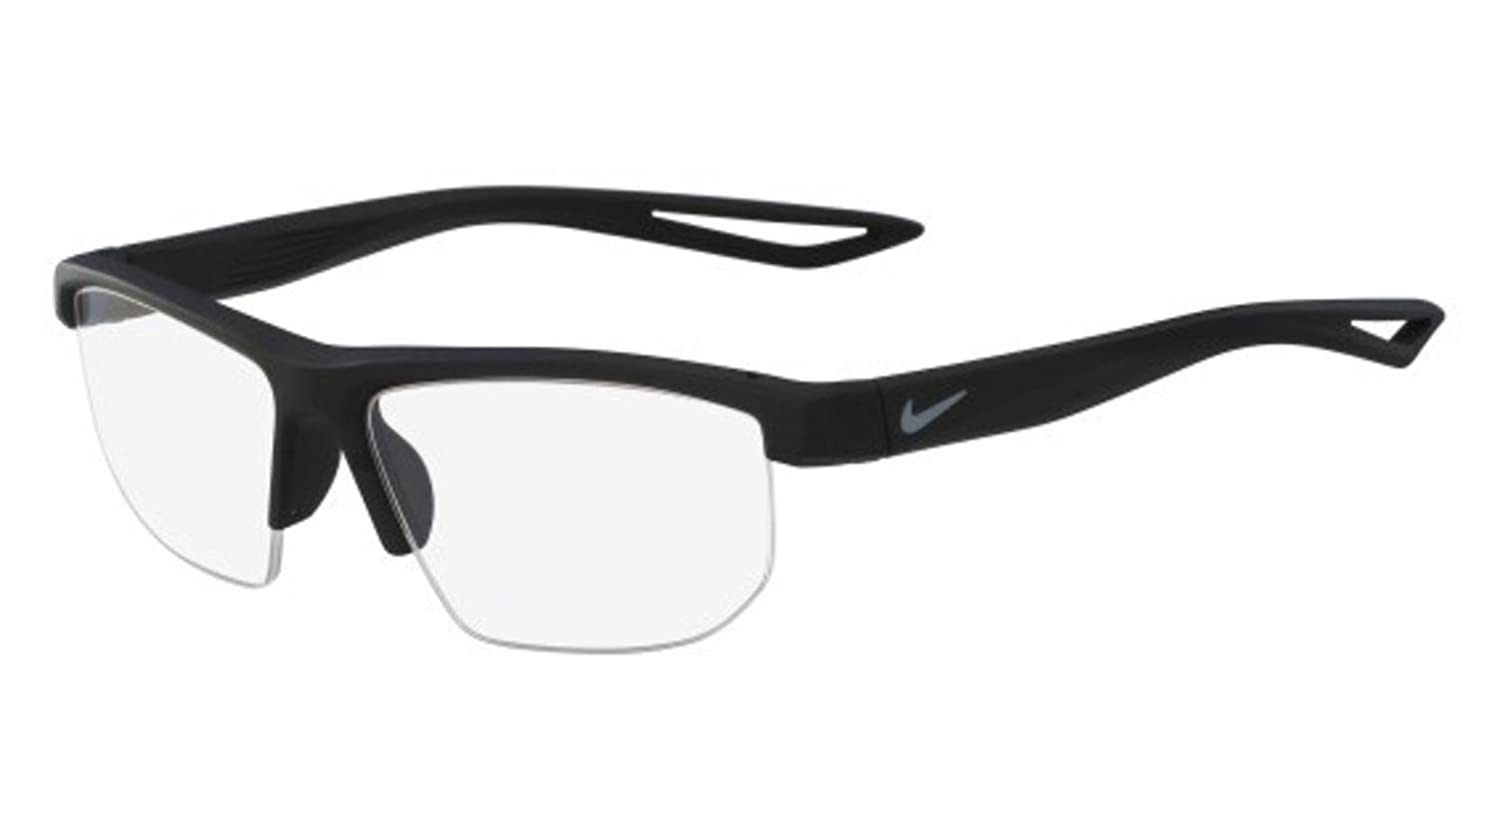 Amazon.com: Eyeglasses NIKE 5001 001 MATTE BLACK: Sports & Outdoors